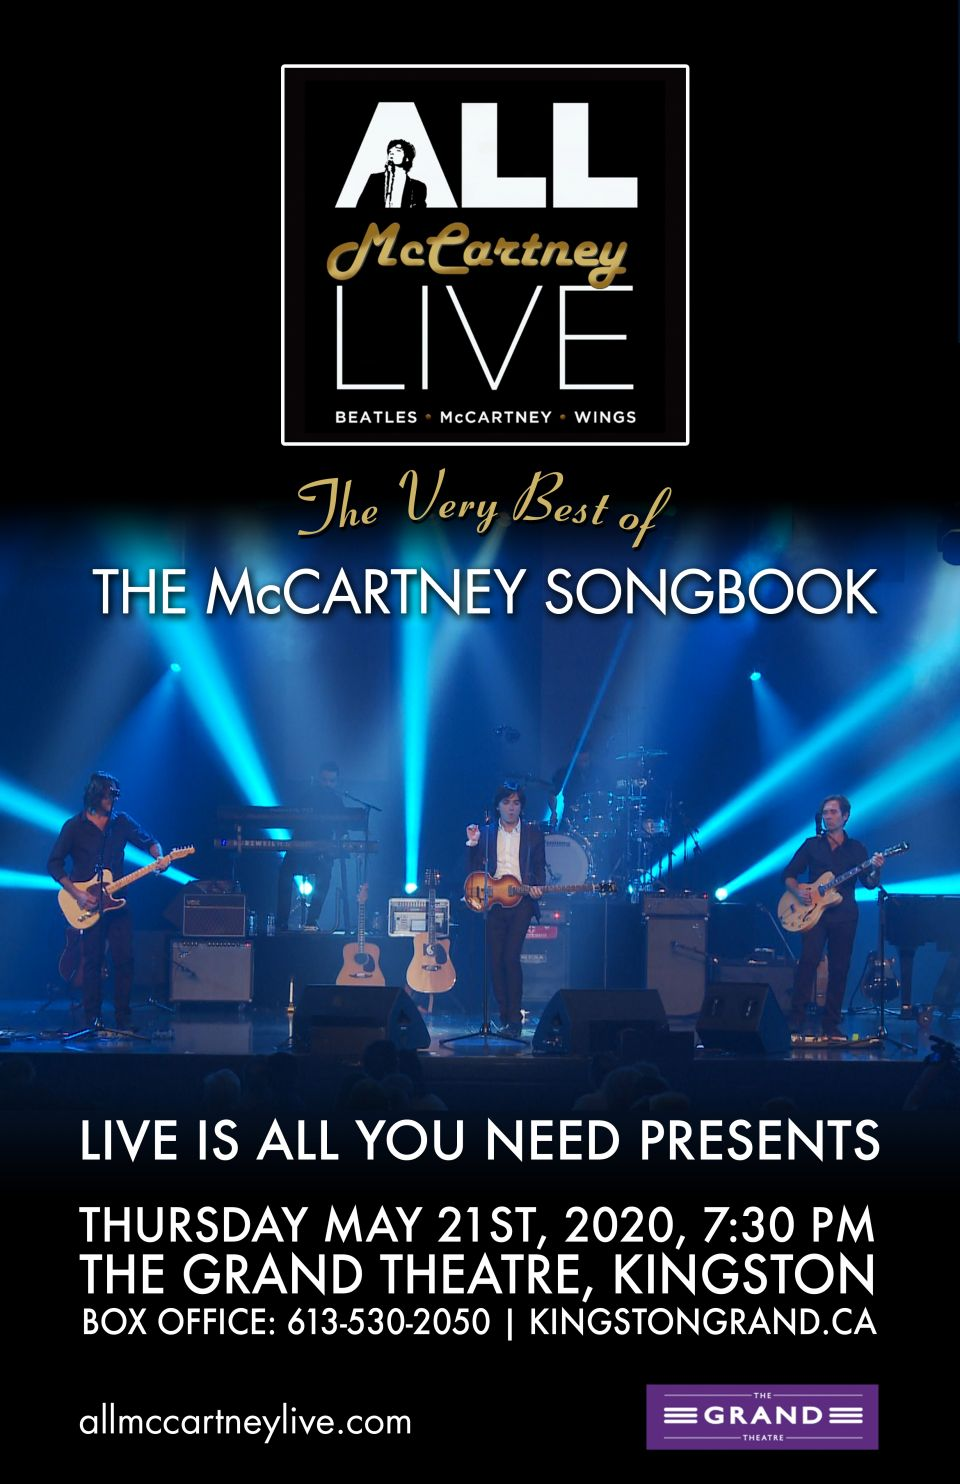 All McCartney Live poster